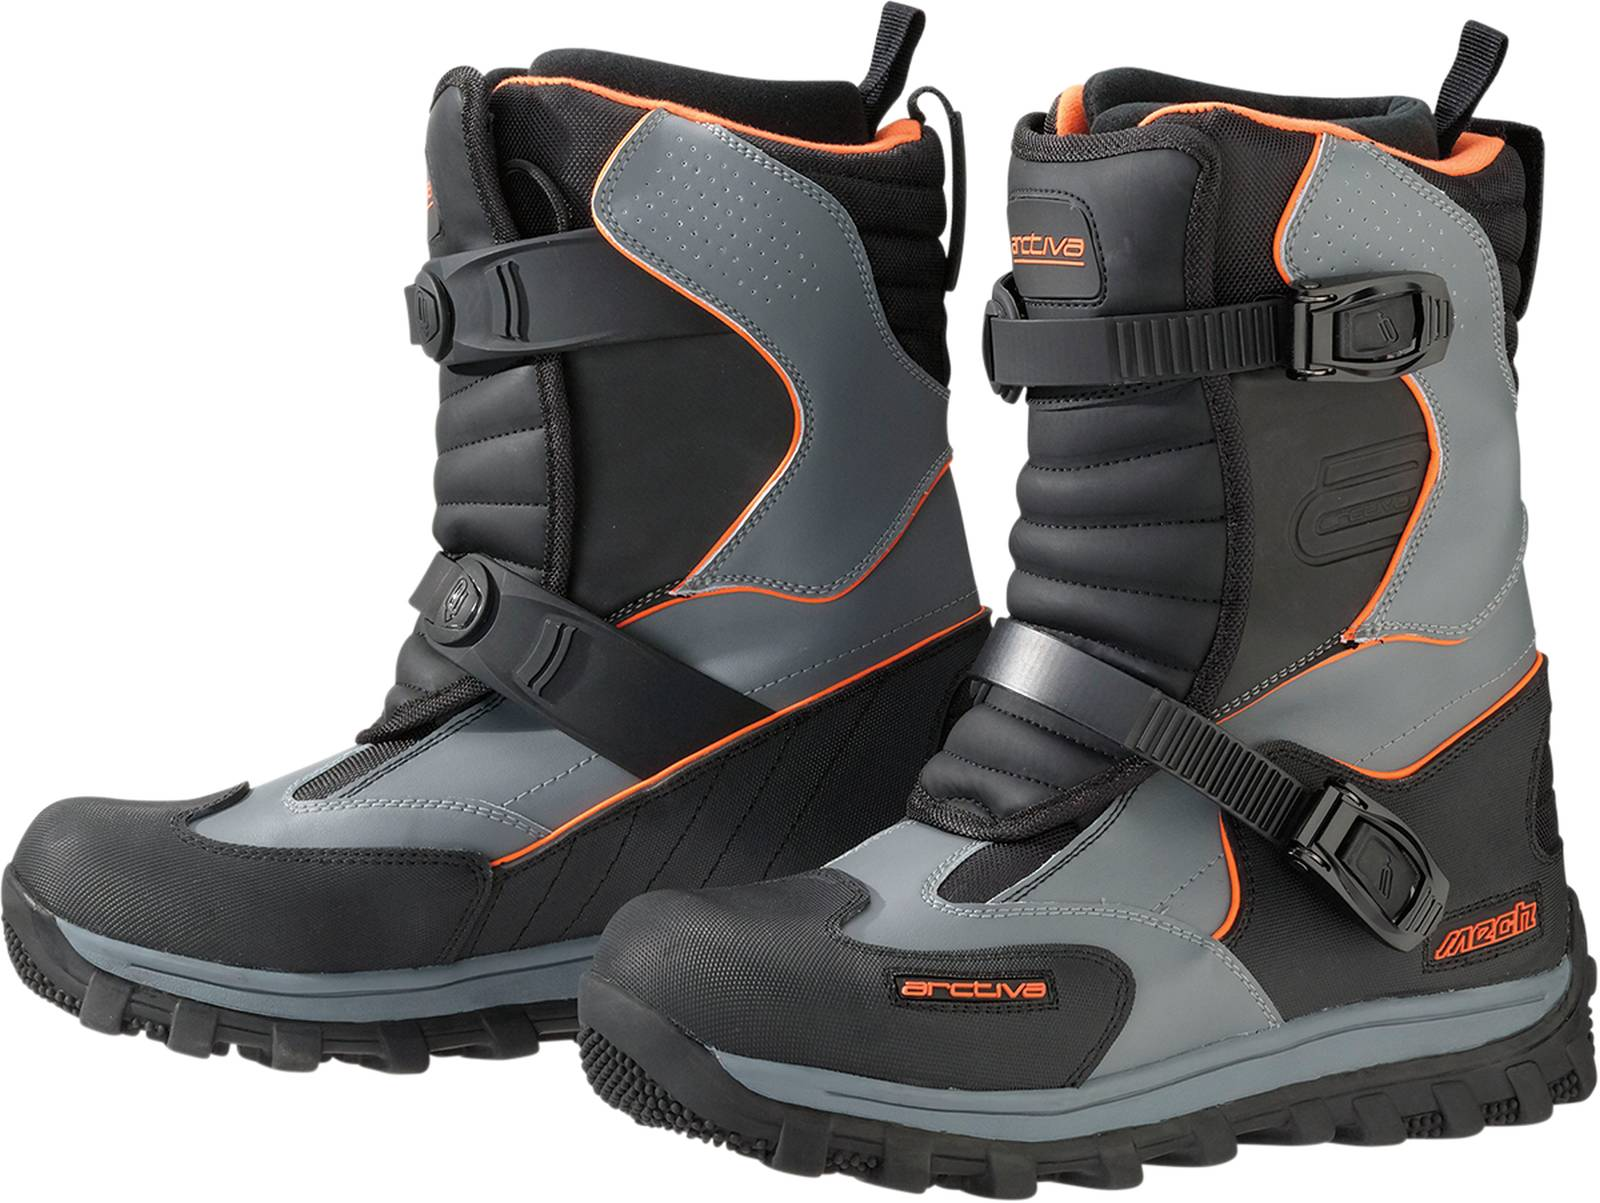 New Arctiva-Snow Mechanized Snowmobile Adult Insulated Boots, Black/Gray, US-9